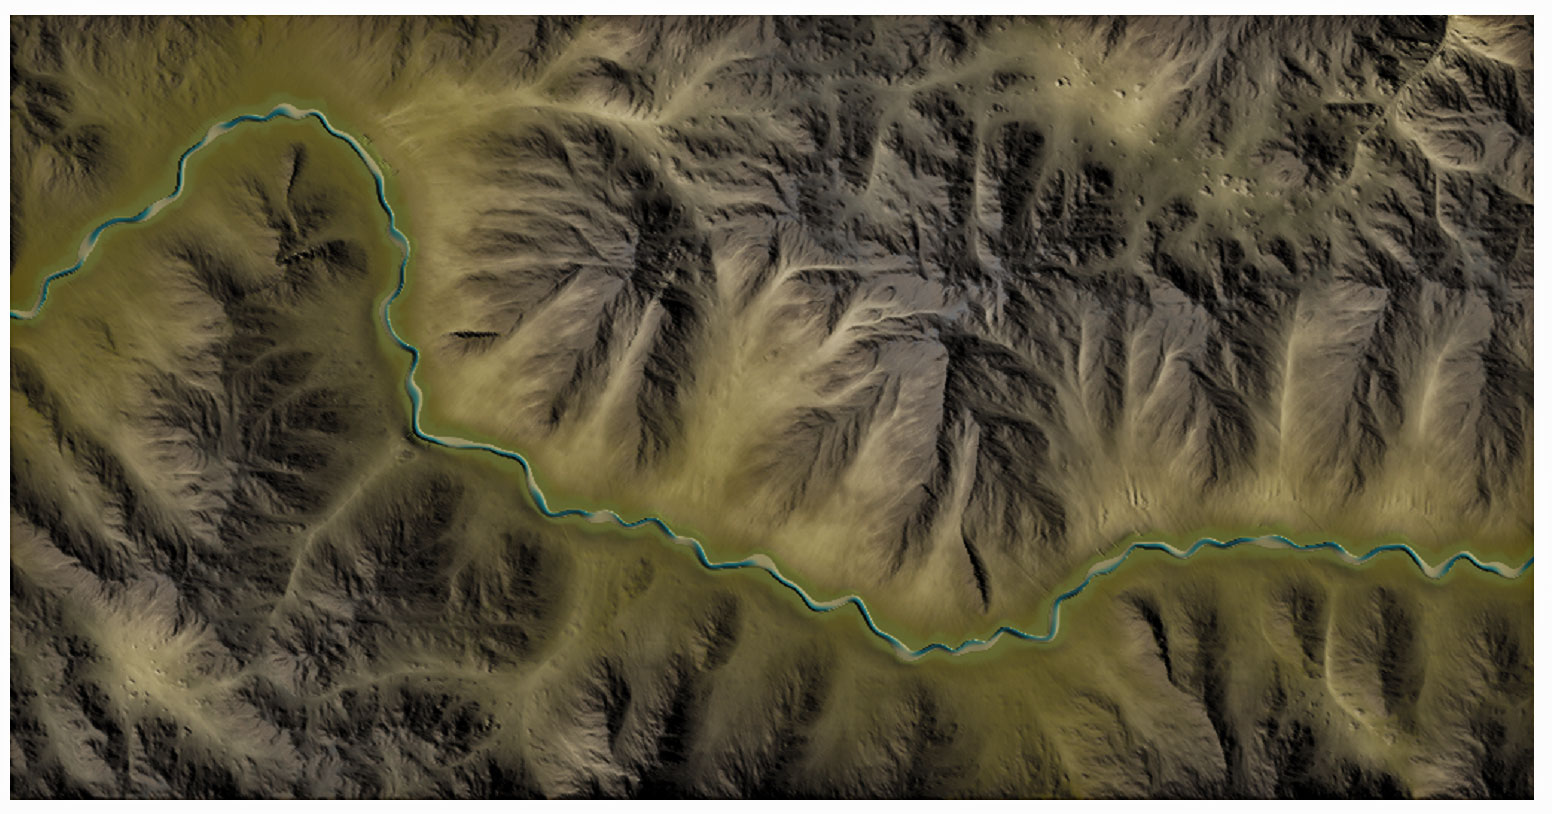 Overhead view of a mountain river